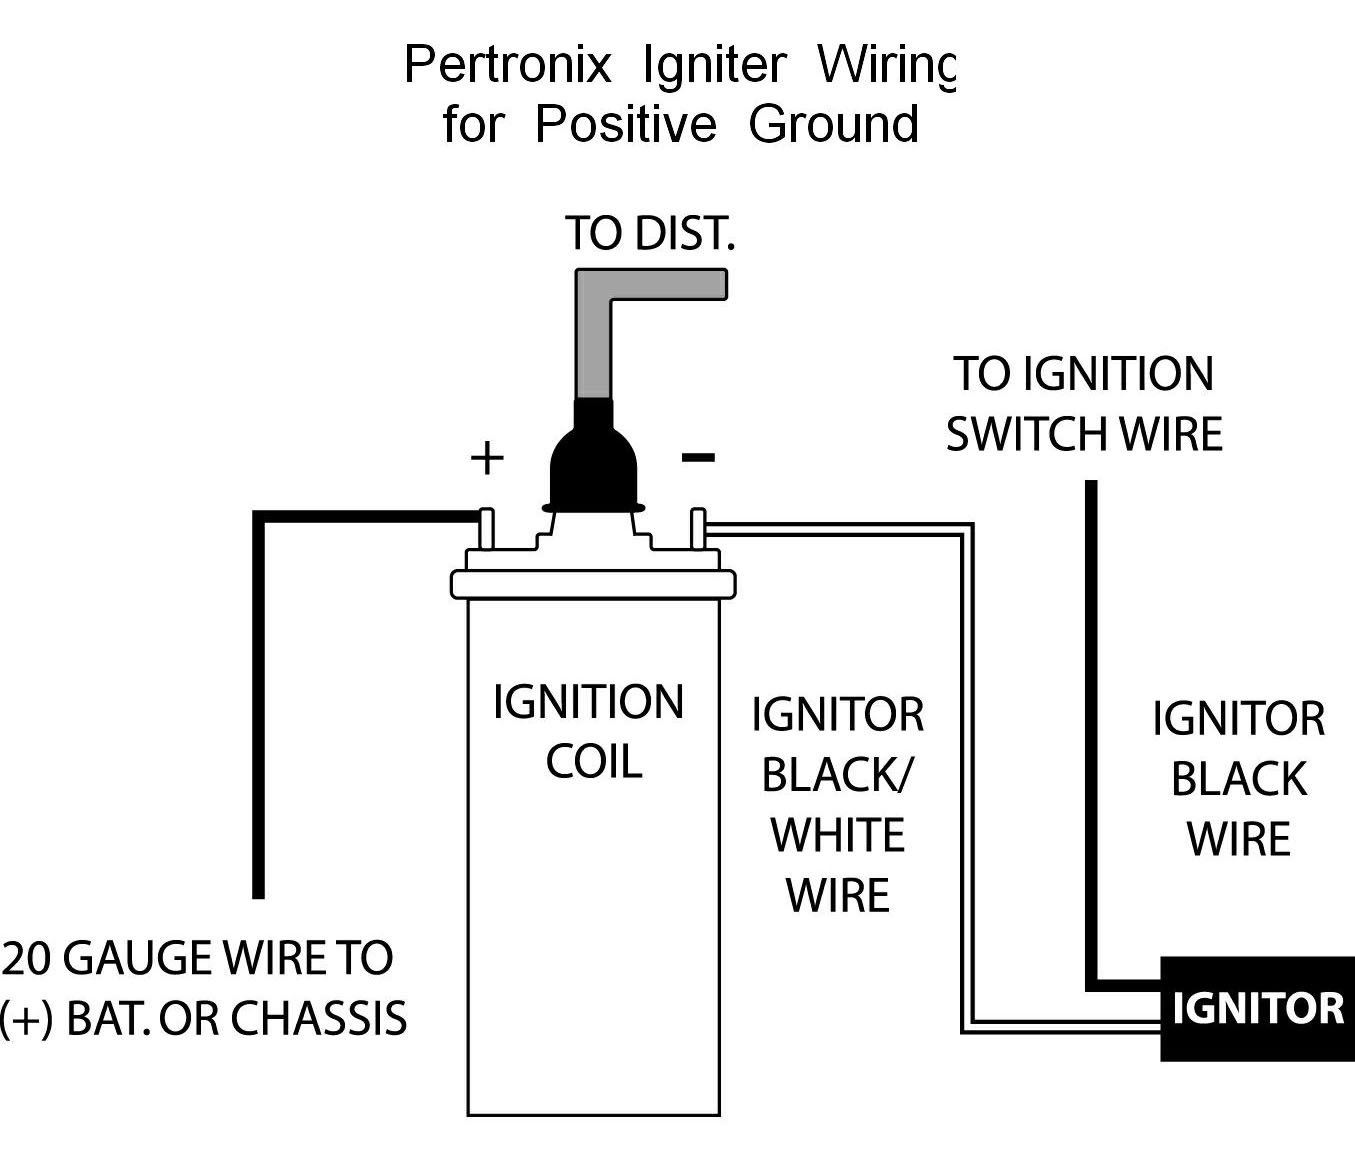 WRG-2562] Basic Ignition Wiring Diagram No Battery on